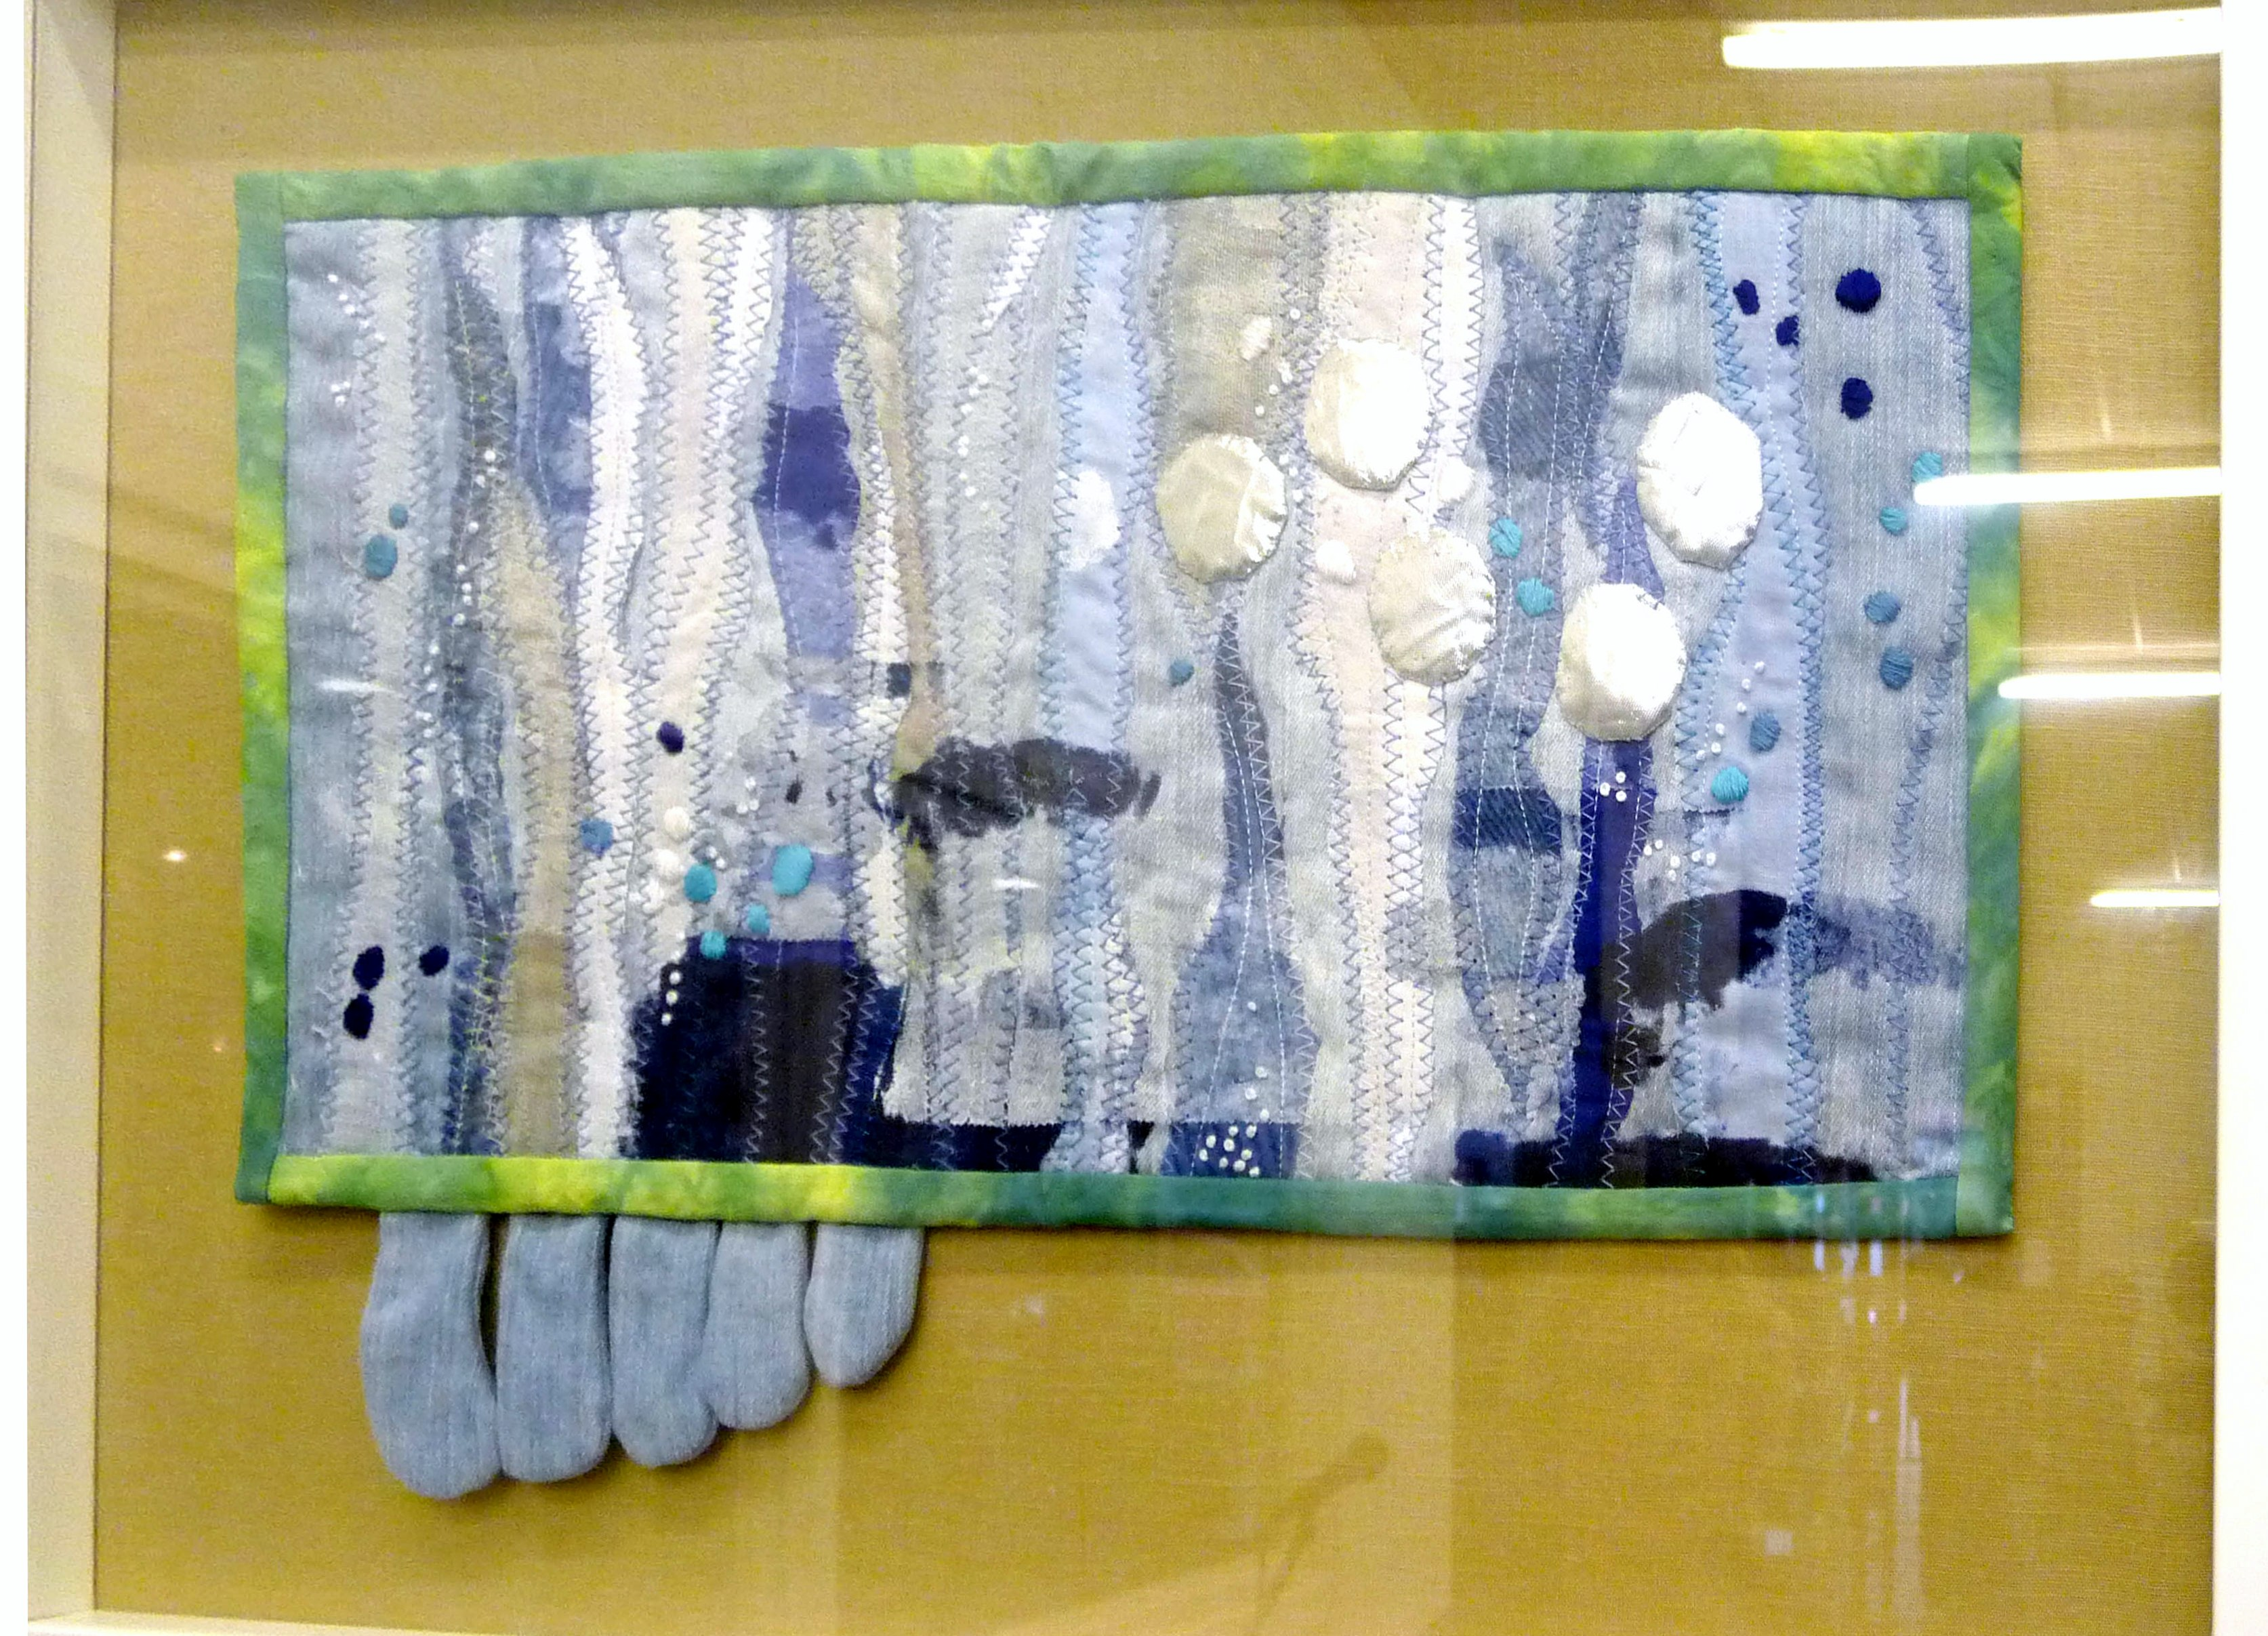 PUTTING MY TOES IN THE WATER by Sue Boardman, textile